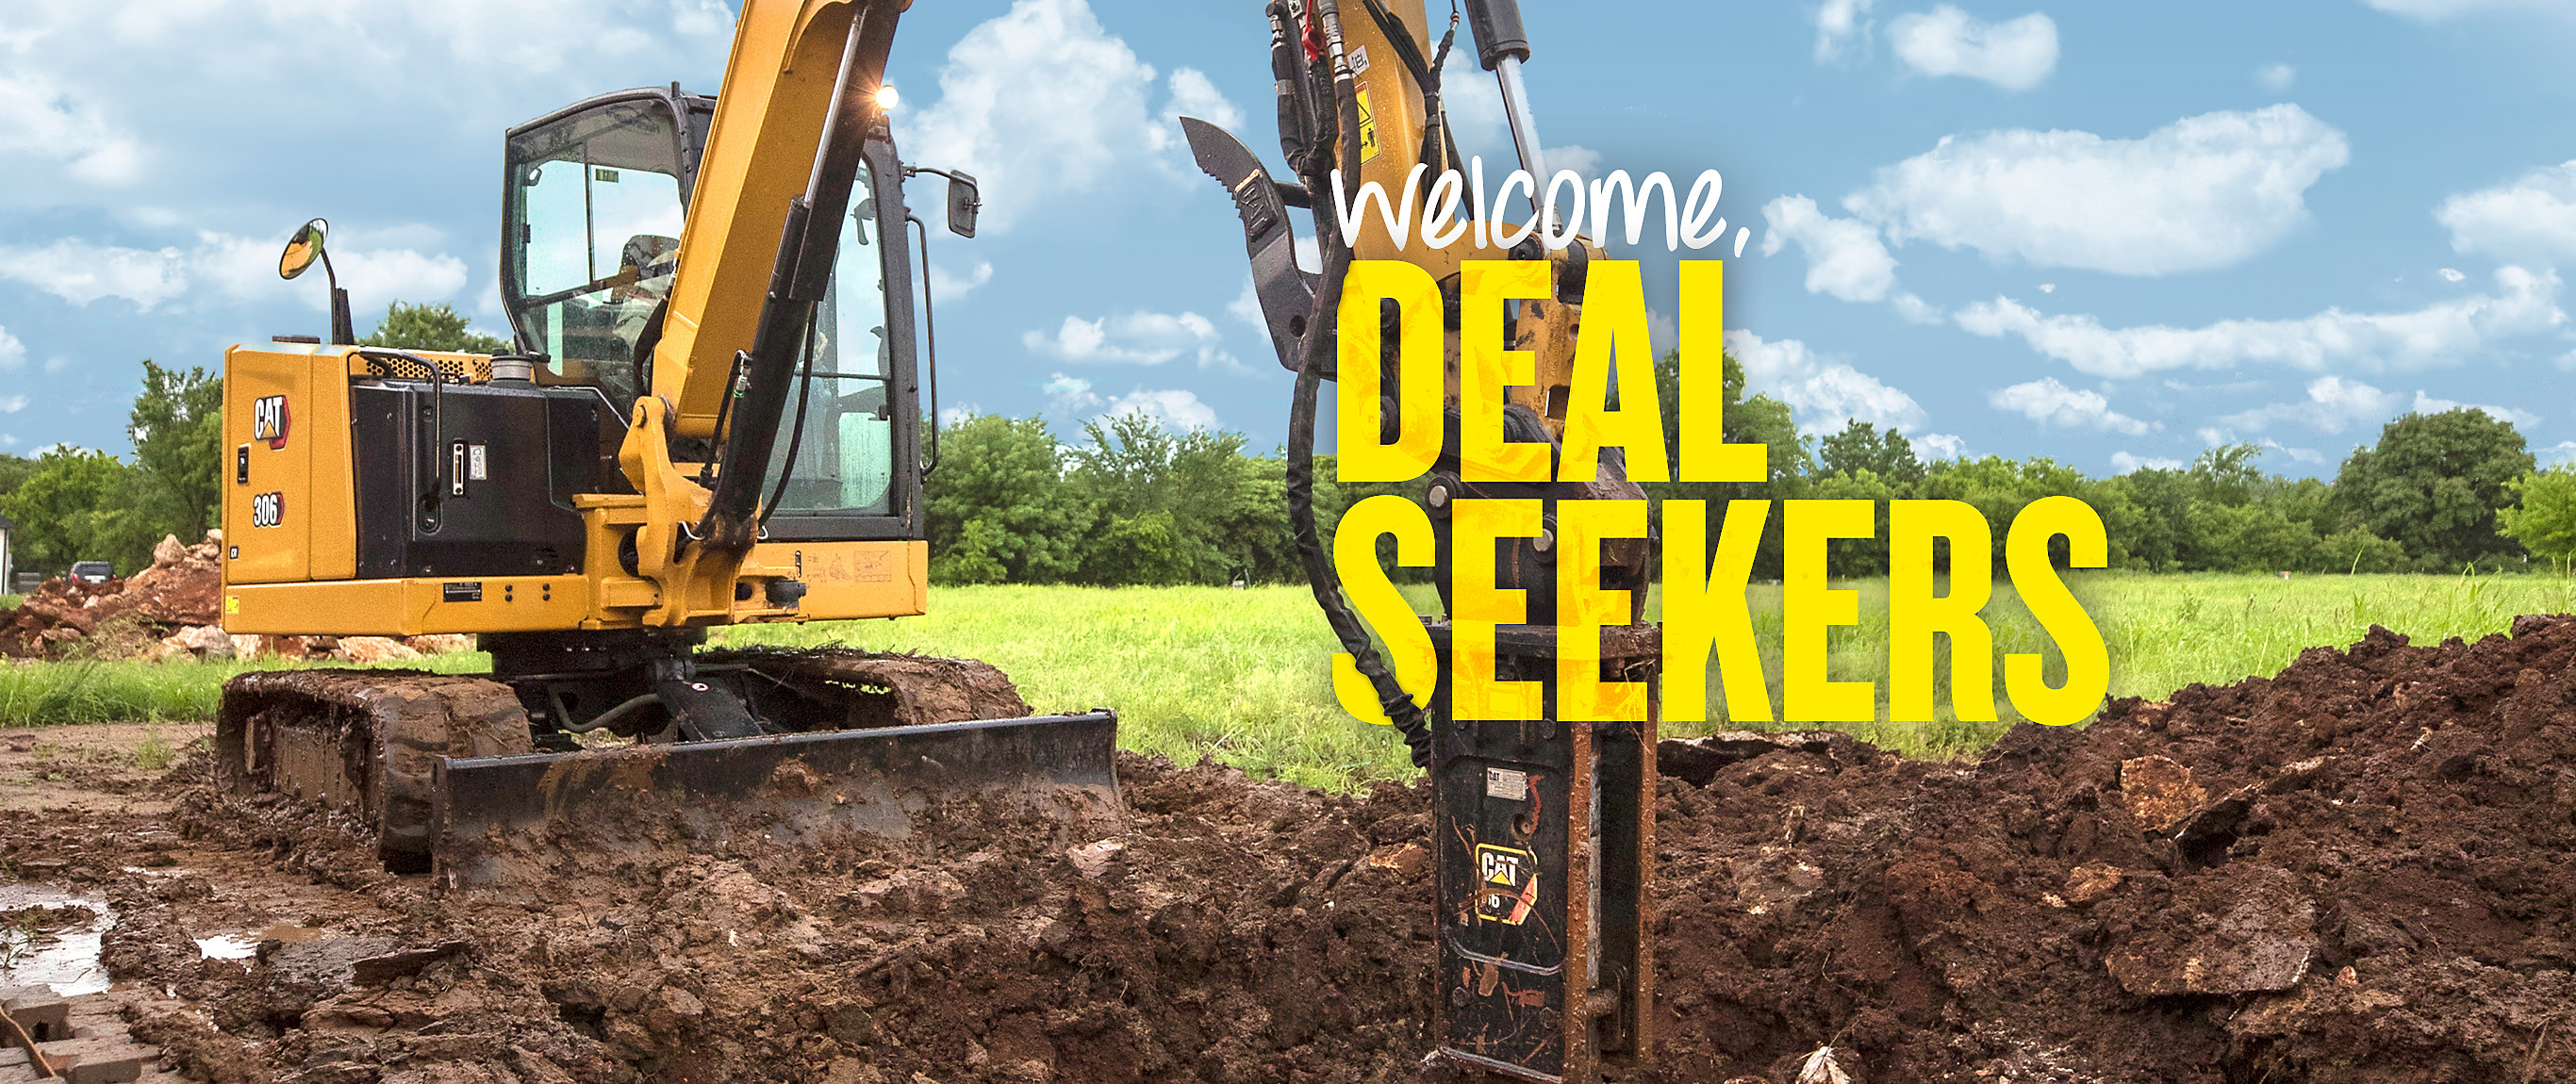 Cat Mini Excavator - Welcome, Deal Seekers